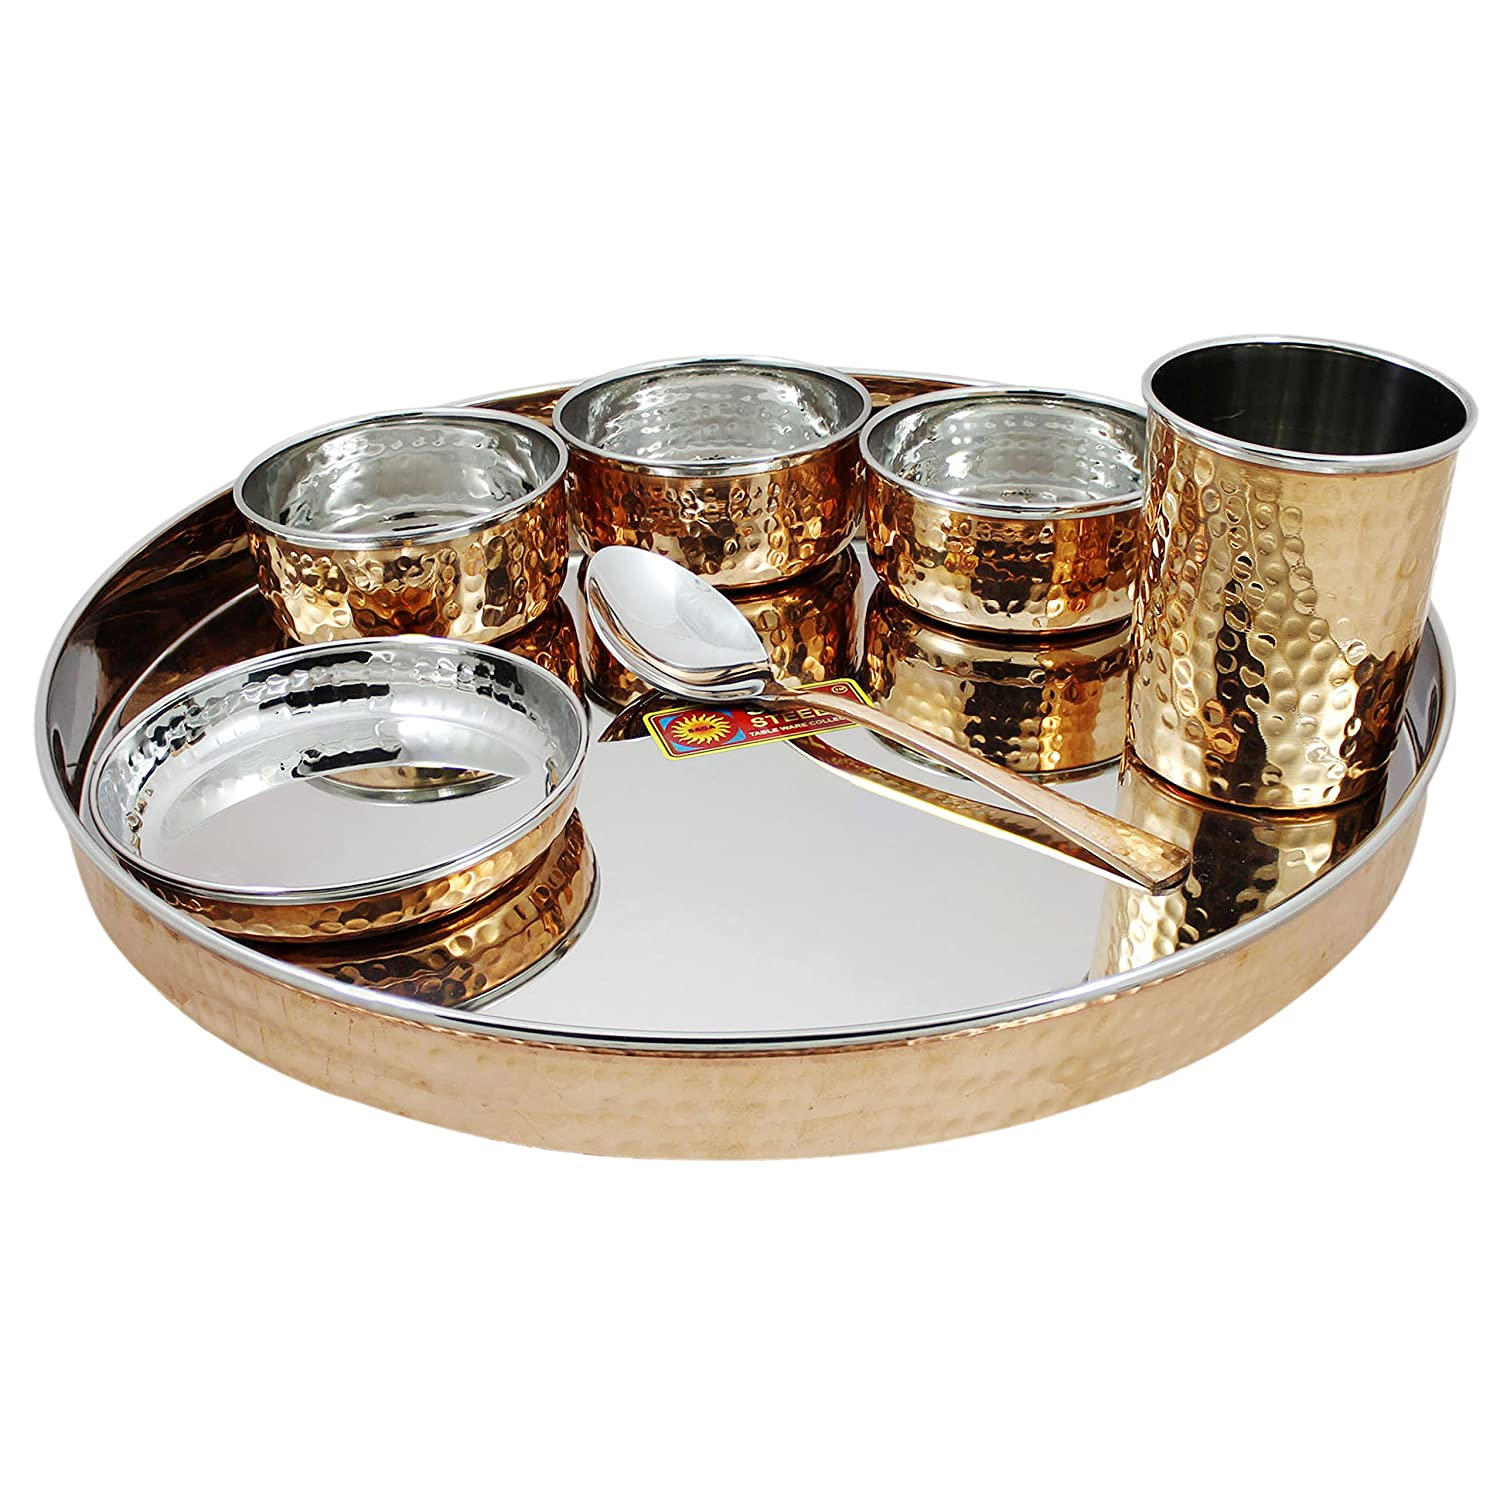 Amazon.com | RoyaltyLane Indian Dinnerware Stainless Steel Copper  Traditional Dinner Set Of Thali Plate, Bowls, Glass And Spoon, Diameter 13  Inch: Bowls